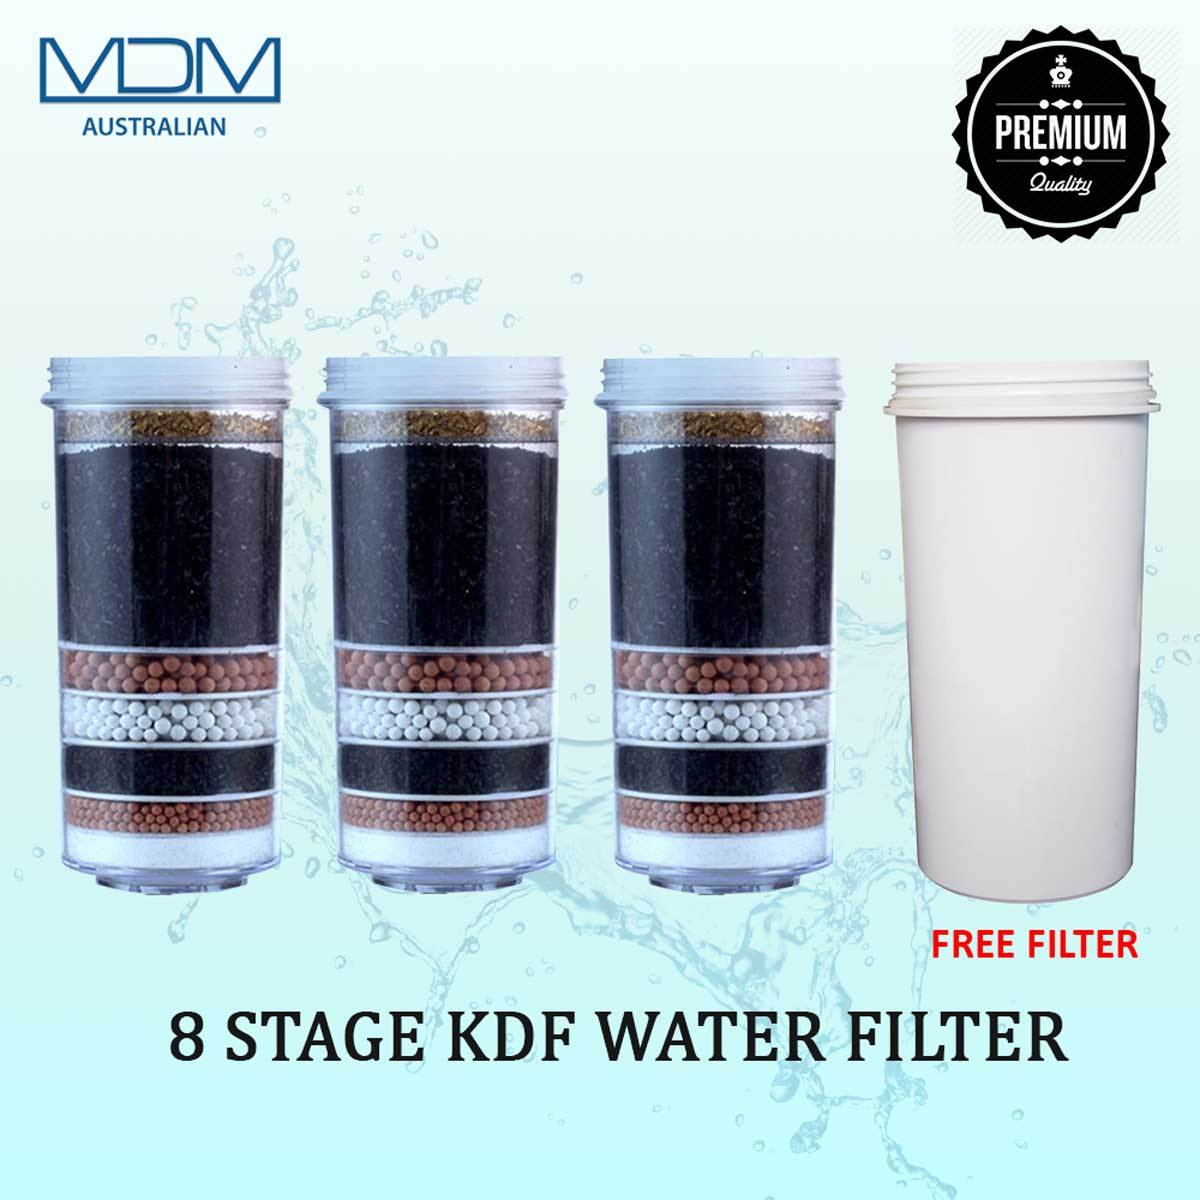 Awesome Aimex Water Filter 8 Stage X 4 - MDMAustralian